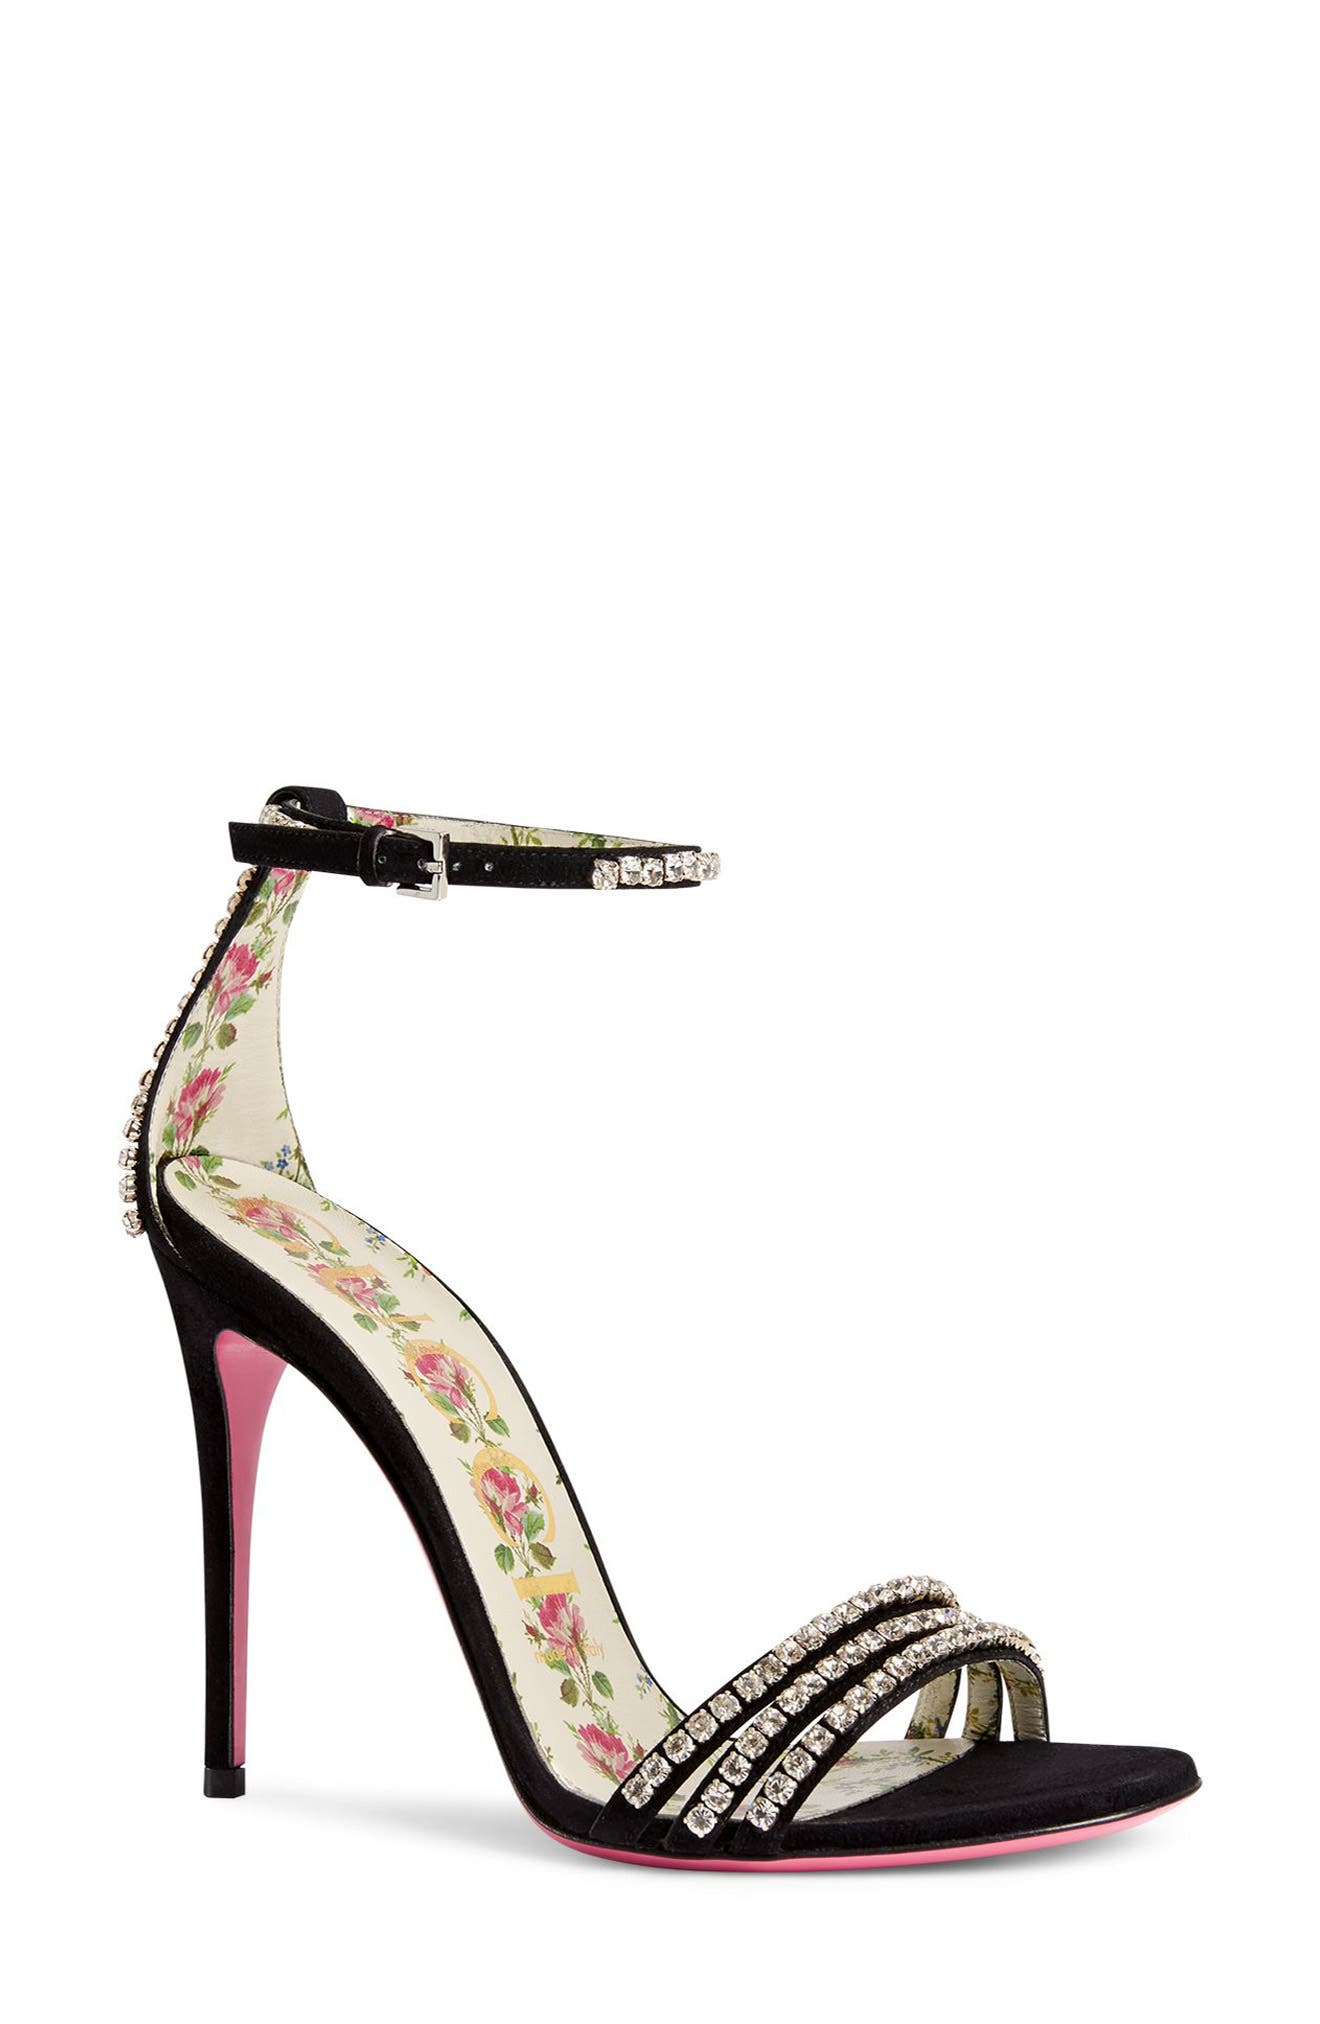 Alternate Image 1 Selected - Gucci Ilse Crystal Embellished Ankle Strap Sandal (Women)